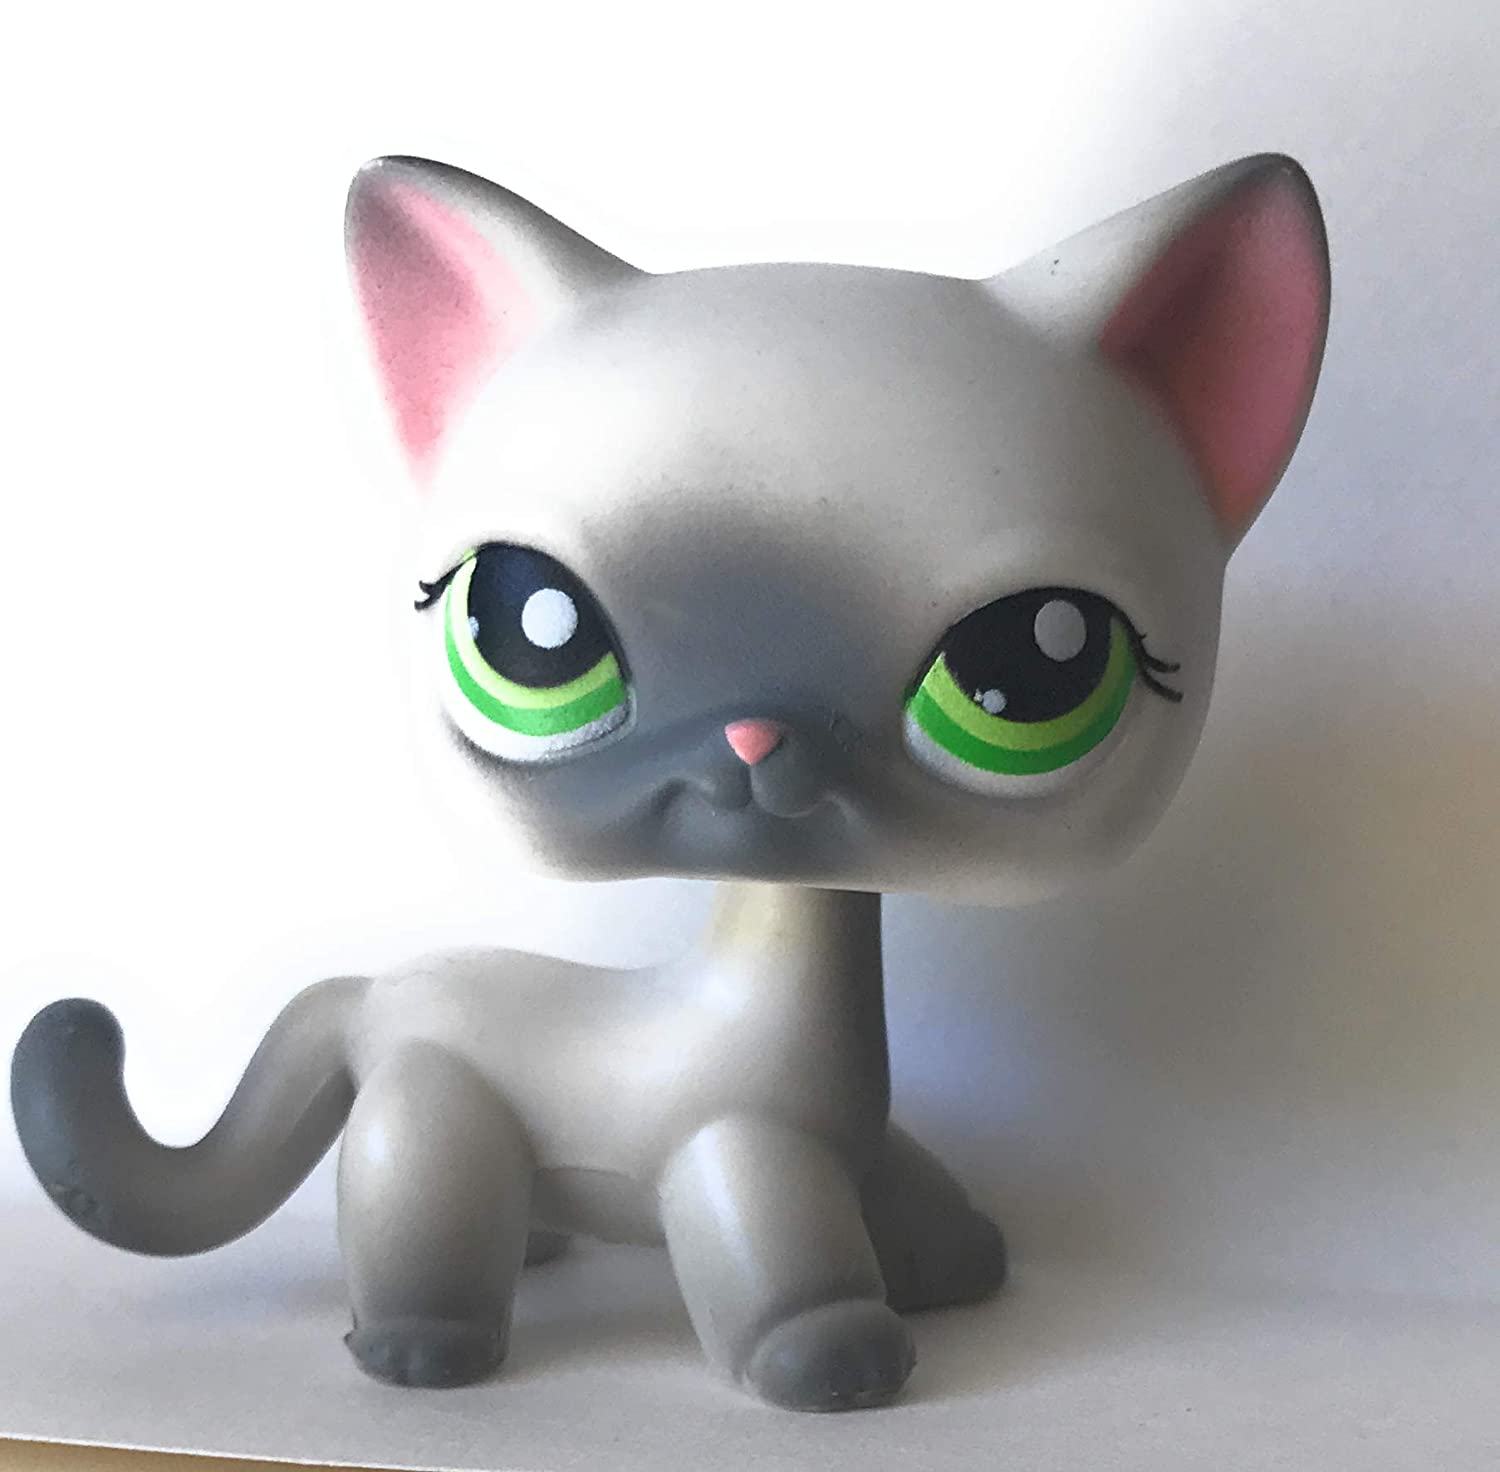 Amazon Com Shorthair Cat 125 White Green Eyes Grey Tips Littlest Pet Shop Retired Collector Toy Lps Collectible Replacement Single Figure Loose Oop Out Of Package Print Toys Games